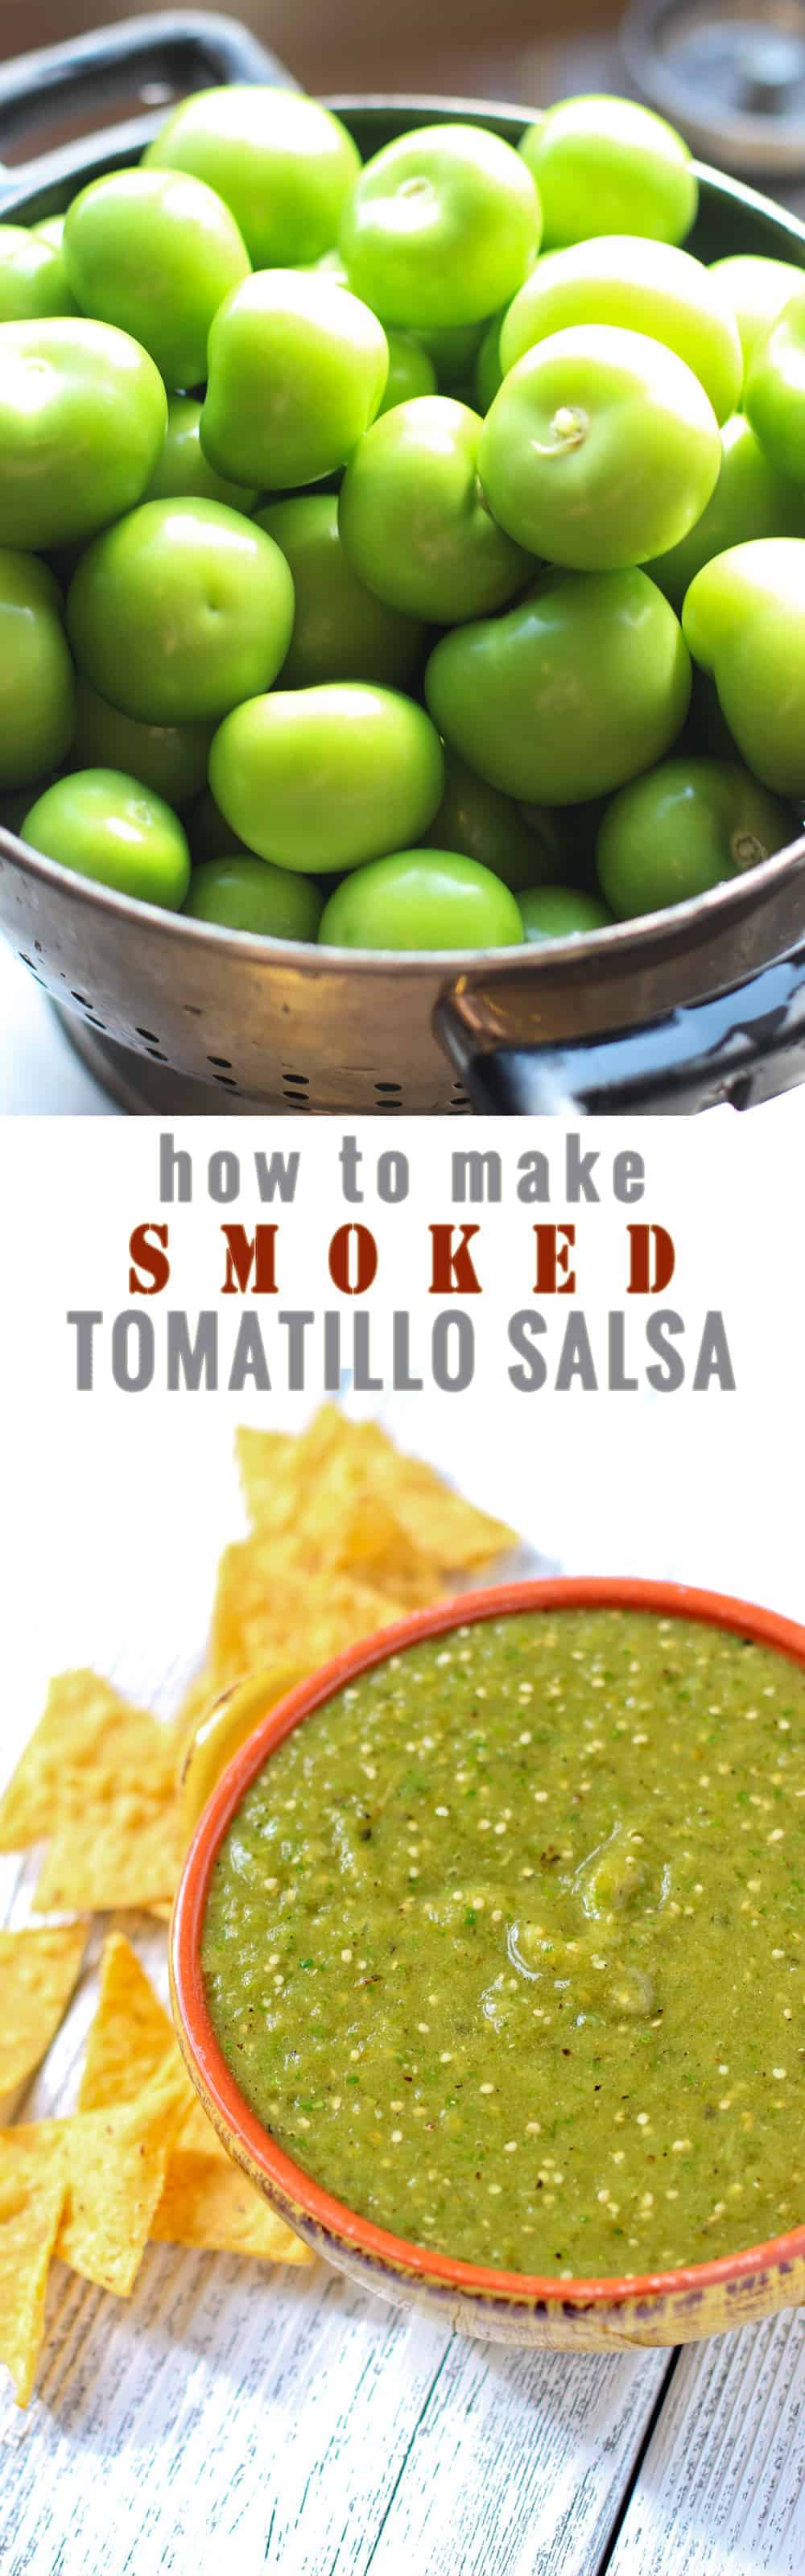 How to smoke tomatillos and made a fantastic smoked tomatillo salsa. It's sooo easy and everyone LOVES it! It's fantastic on pork sausages, chicken, or just simply with chips. This is a favorite recipe for our catering business!